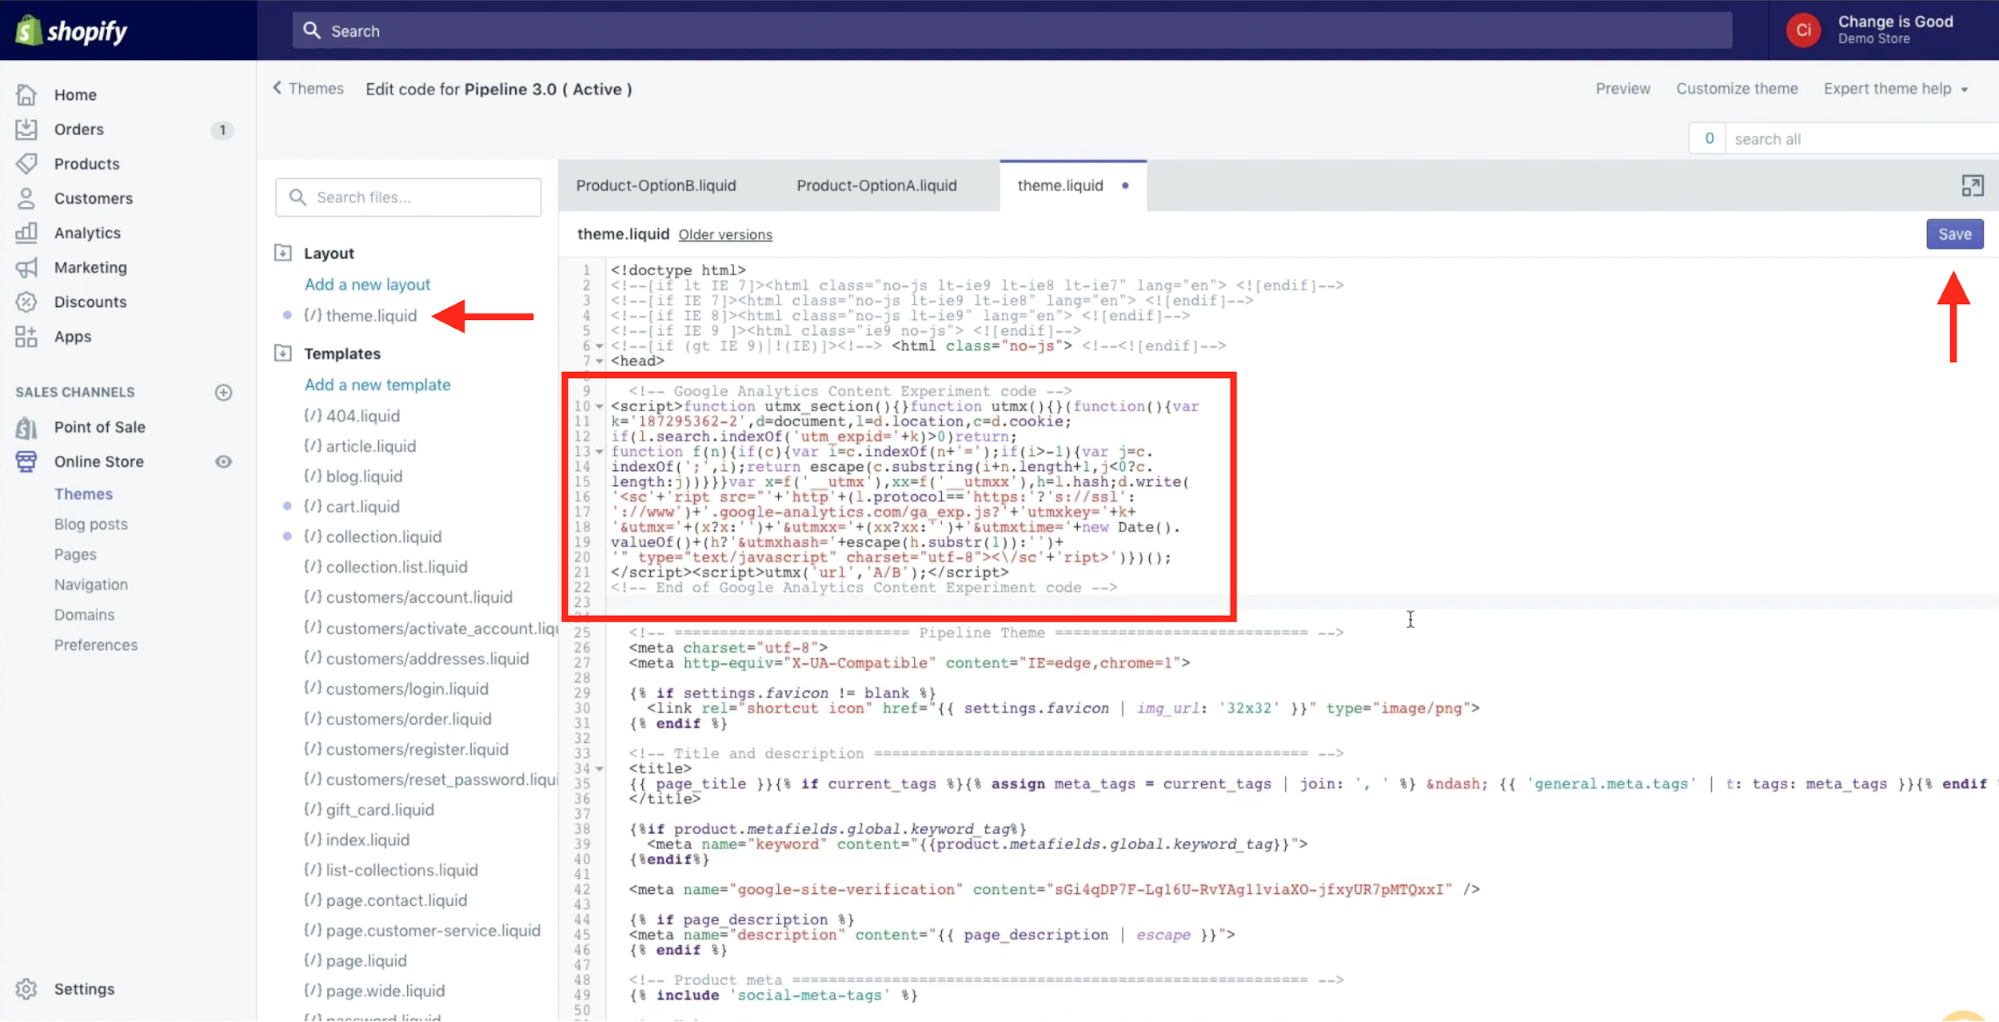 The Google Analytics code is pasted into the users Shopify theme.liquid file beneath the <head> tag